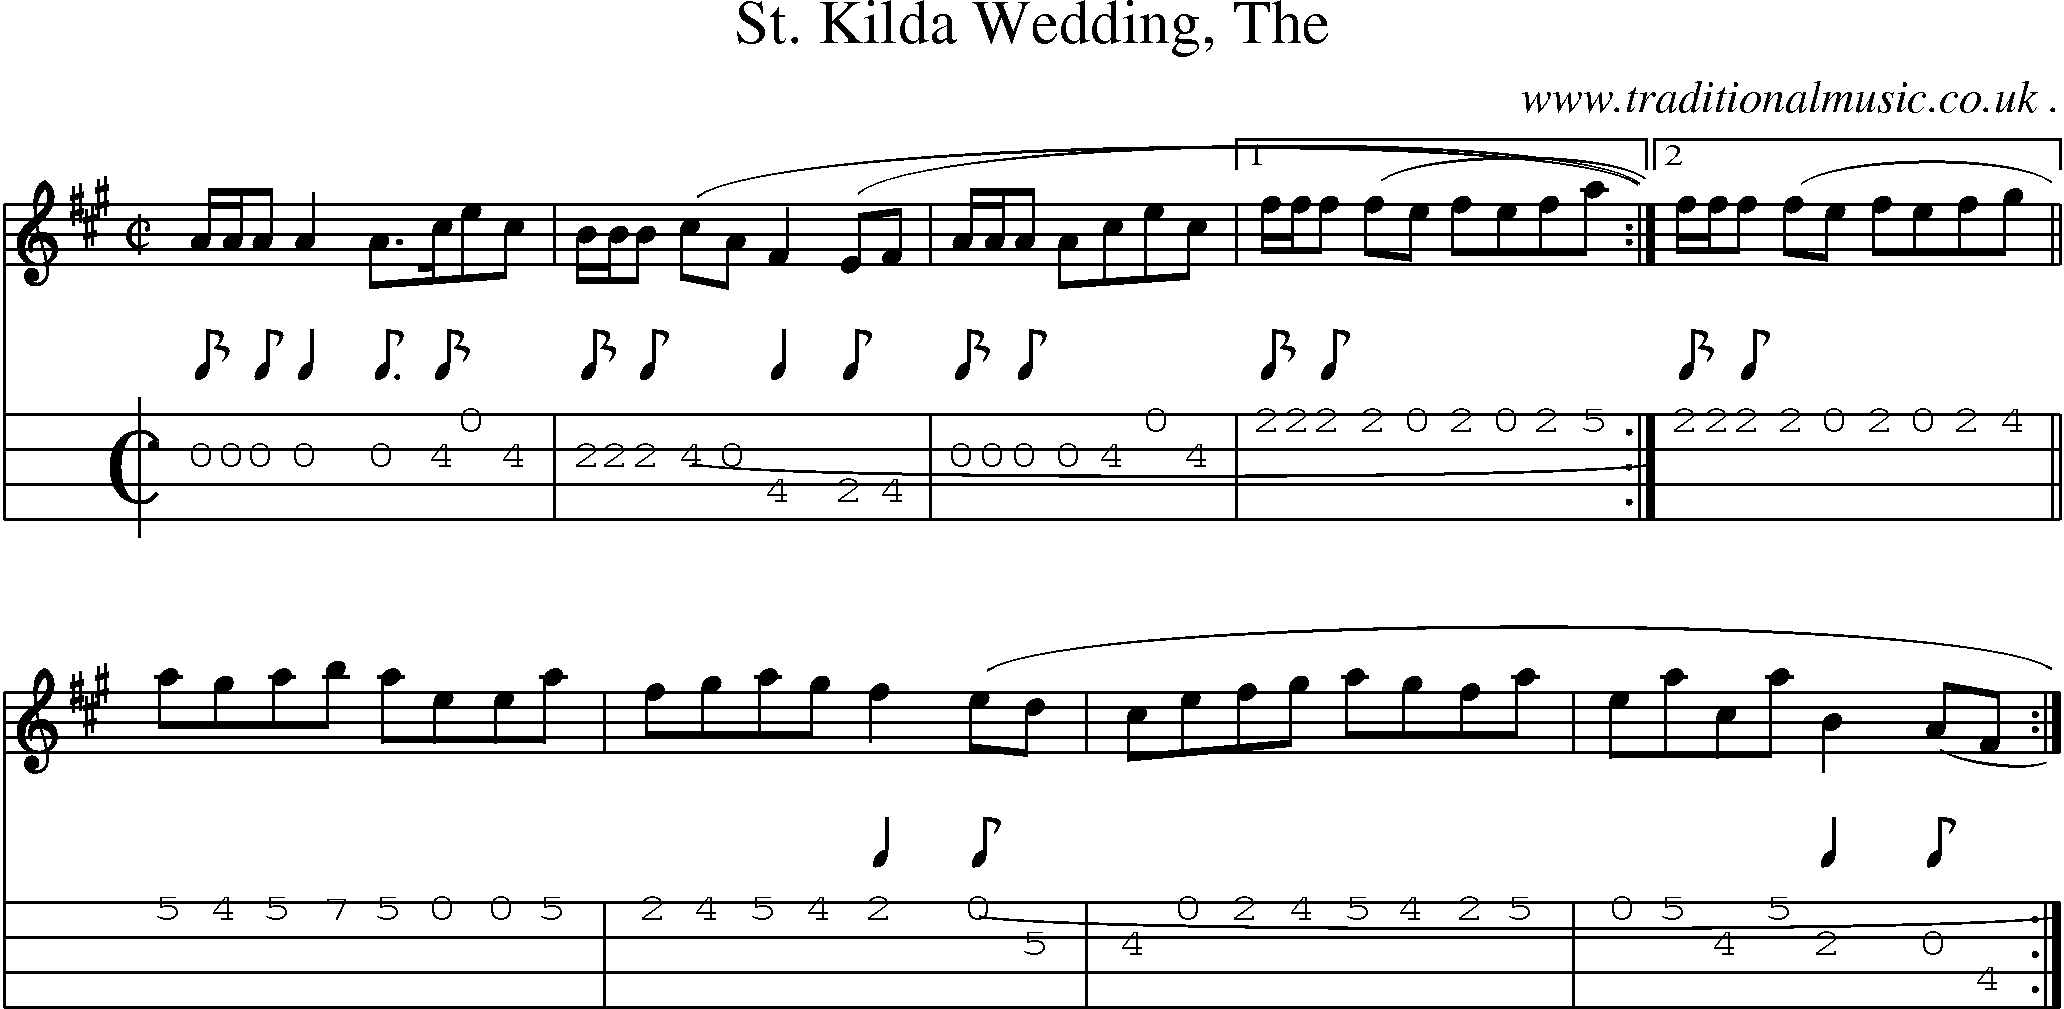 Sheet Music Score Chords And Mandolin Tabs For St Kilda Wedding The